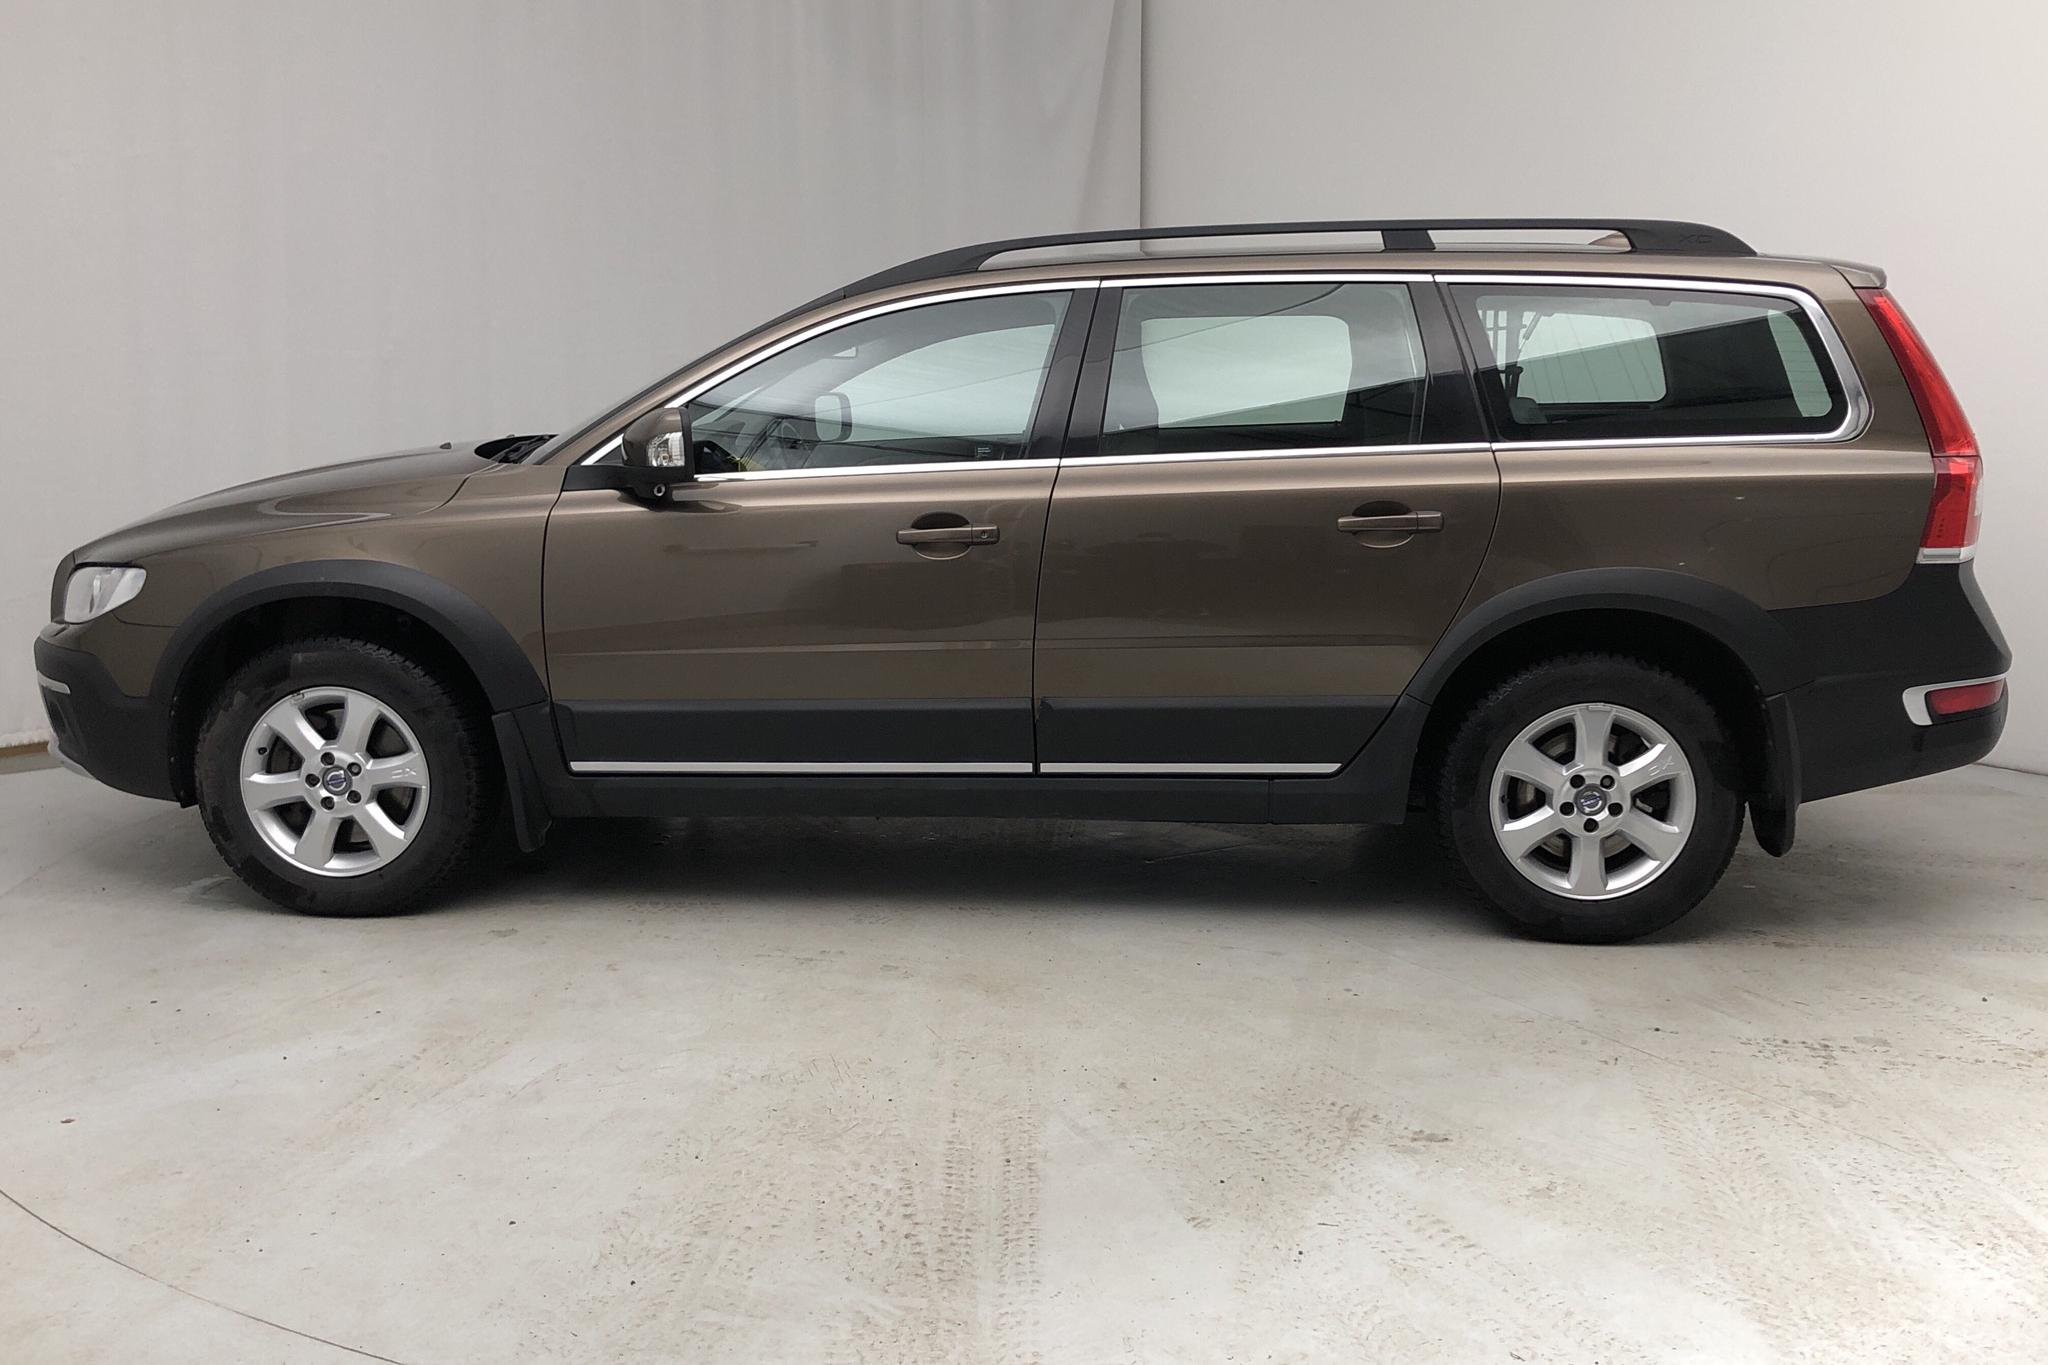 Volvo XC70 II D4 AWD (181hk) - 141 850 km - Automatic - brown - 2015